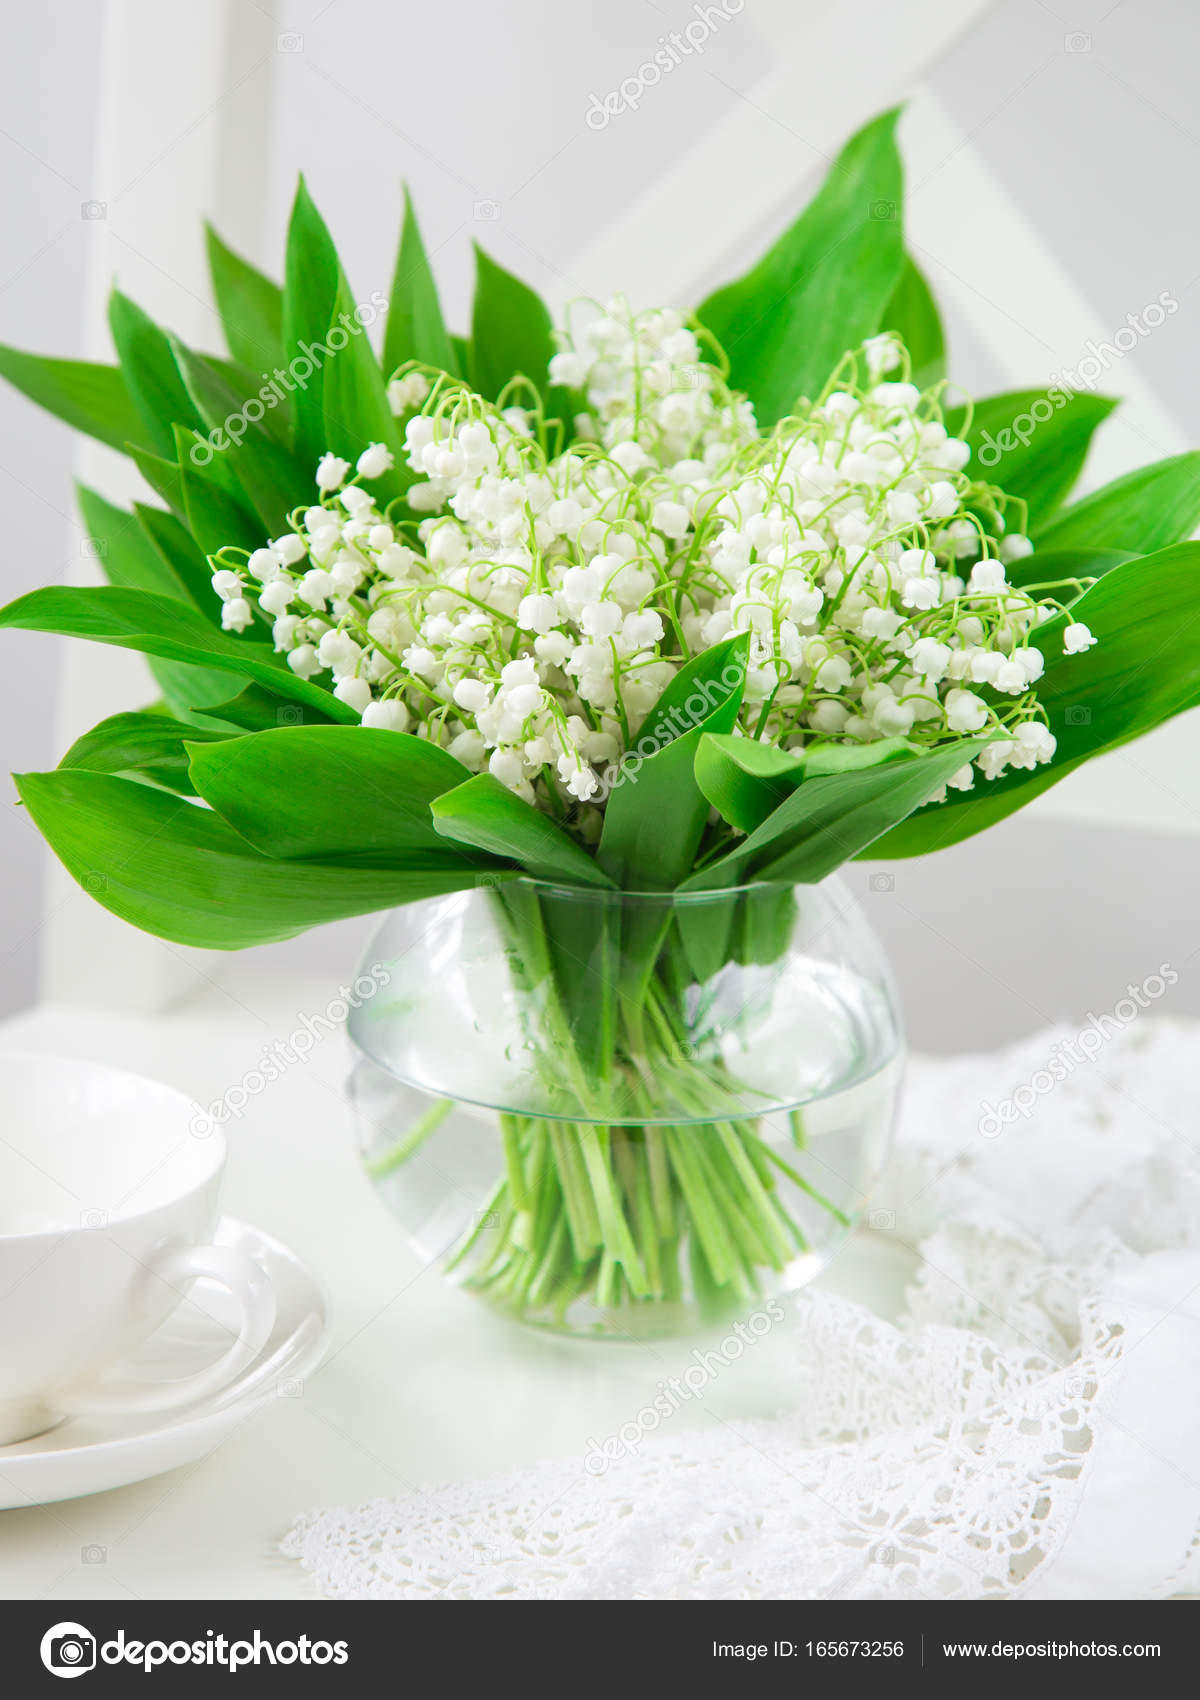 Lily of the valley flowers in vase stock photo annashepulova lily of the valley flowers in vase stock photo izmirmasajfo Choice Image